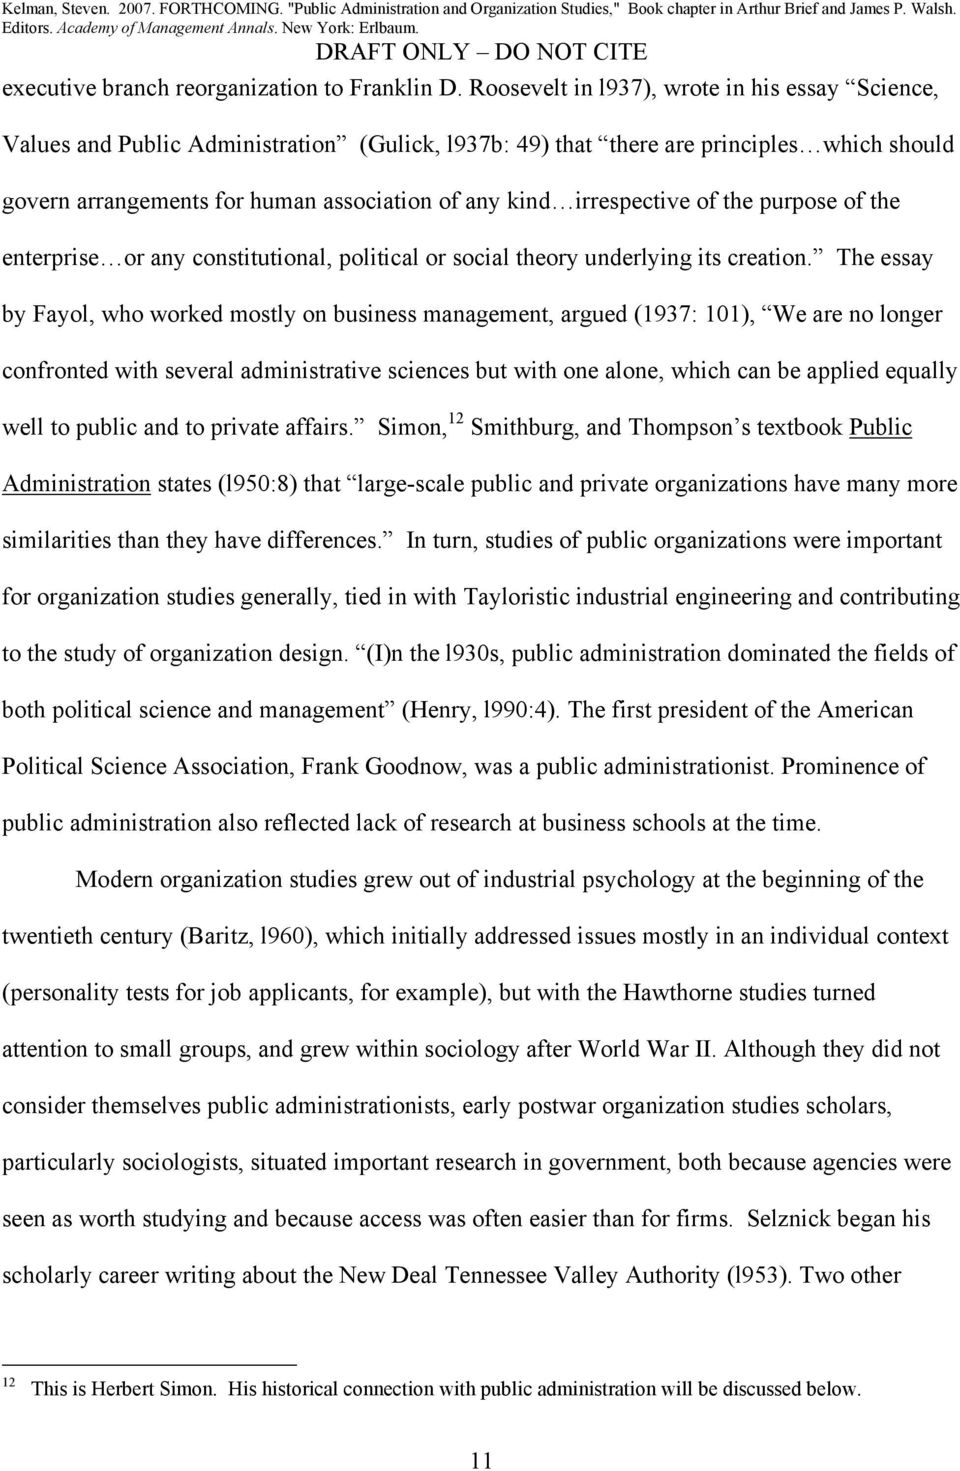 public administration and organization studies steven kelman  irrespective of the purpose of the enterprise or any constitutional  political or social theory underlying